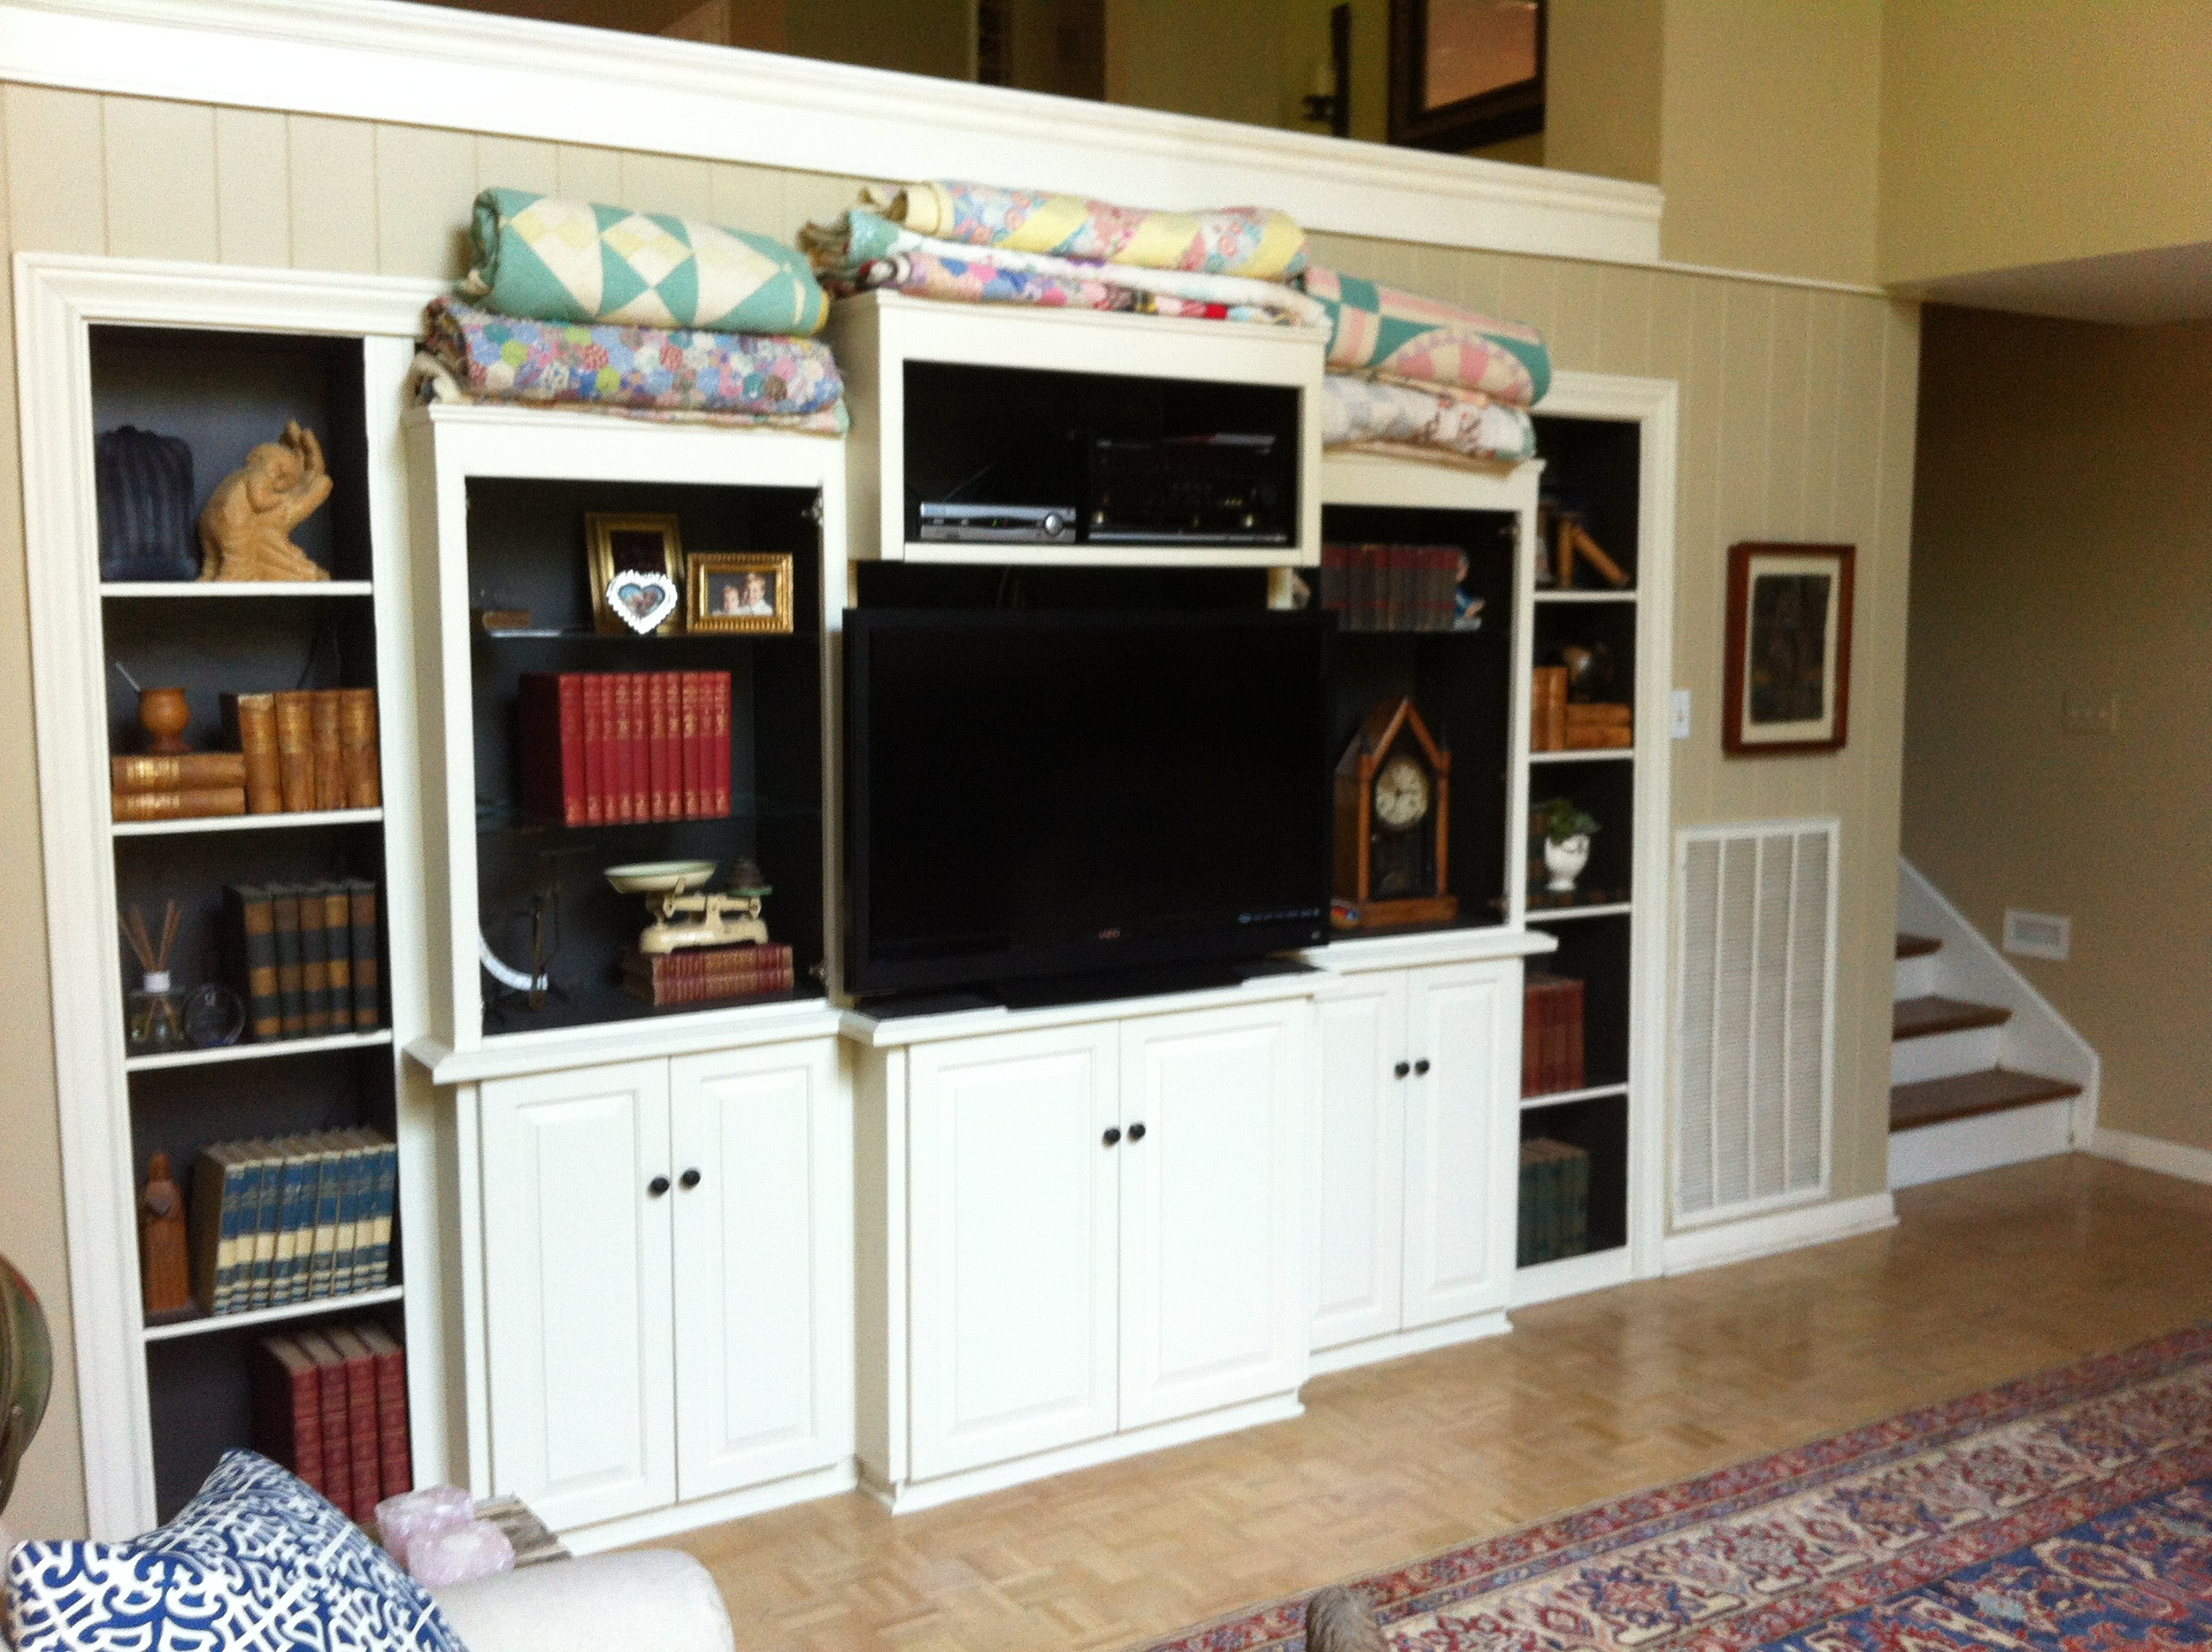 the living room cabinet (minus the glass doors) in it's new home in the den